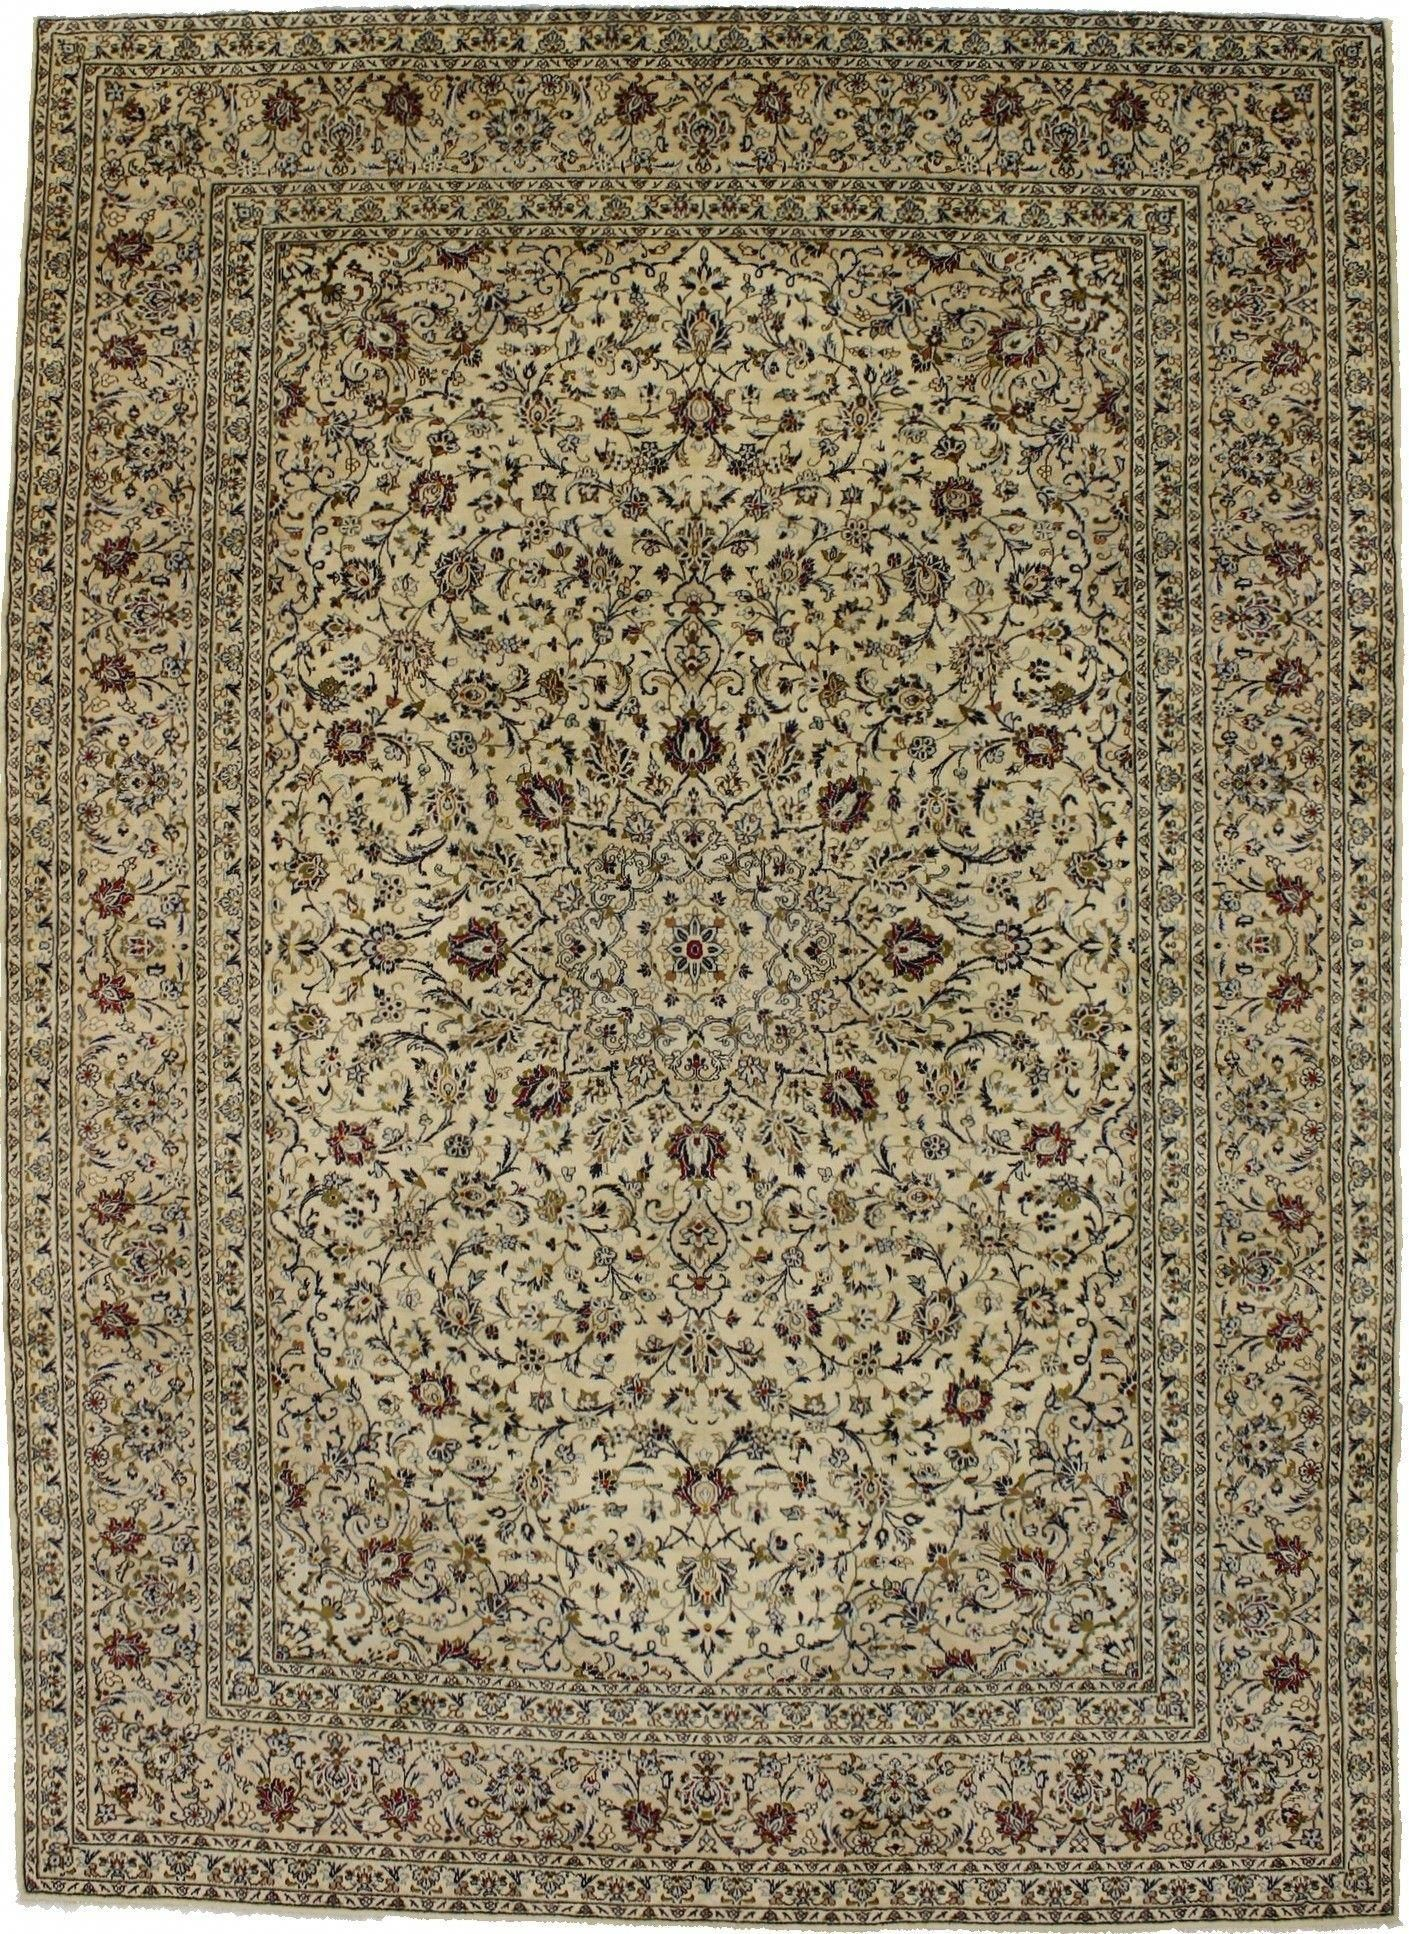 Carpet Runners Walmart Canada Redcarpetrunnernearme Product Id